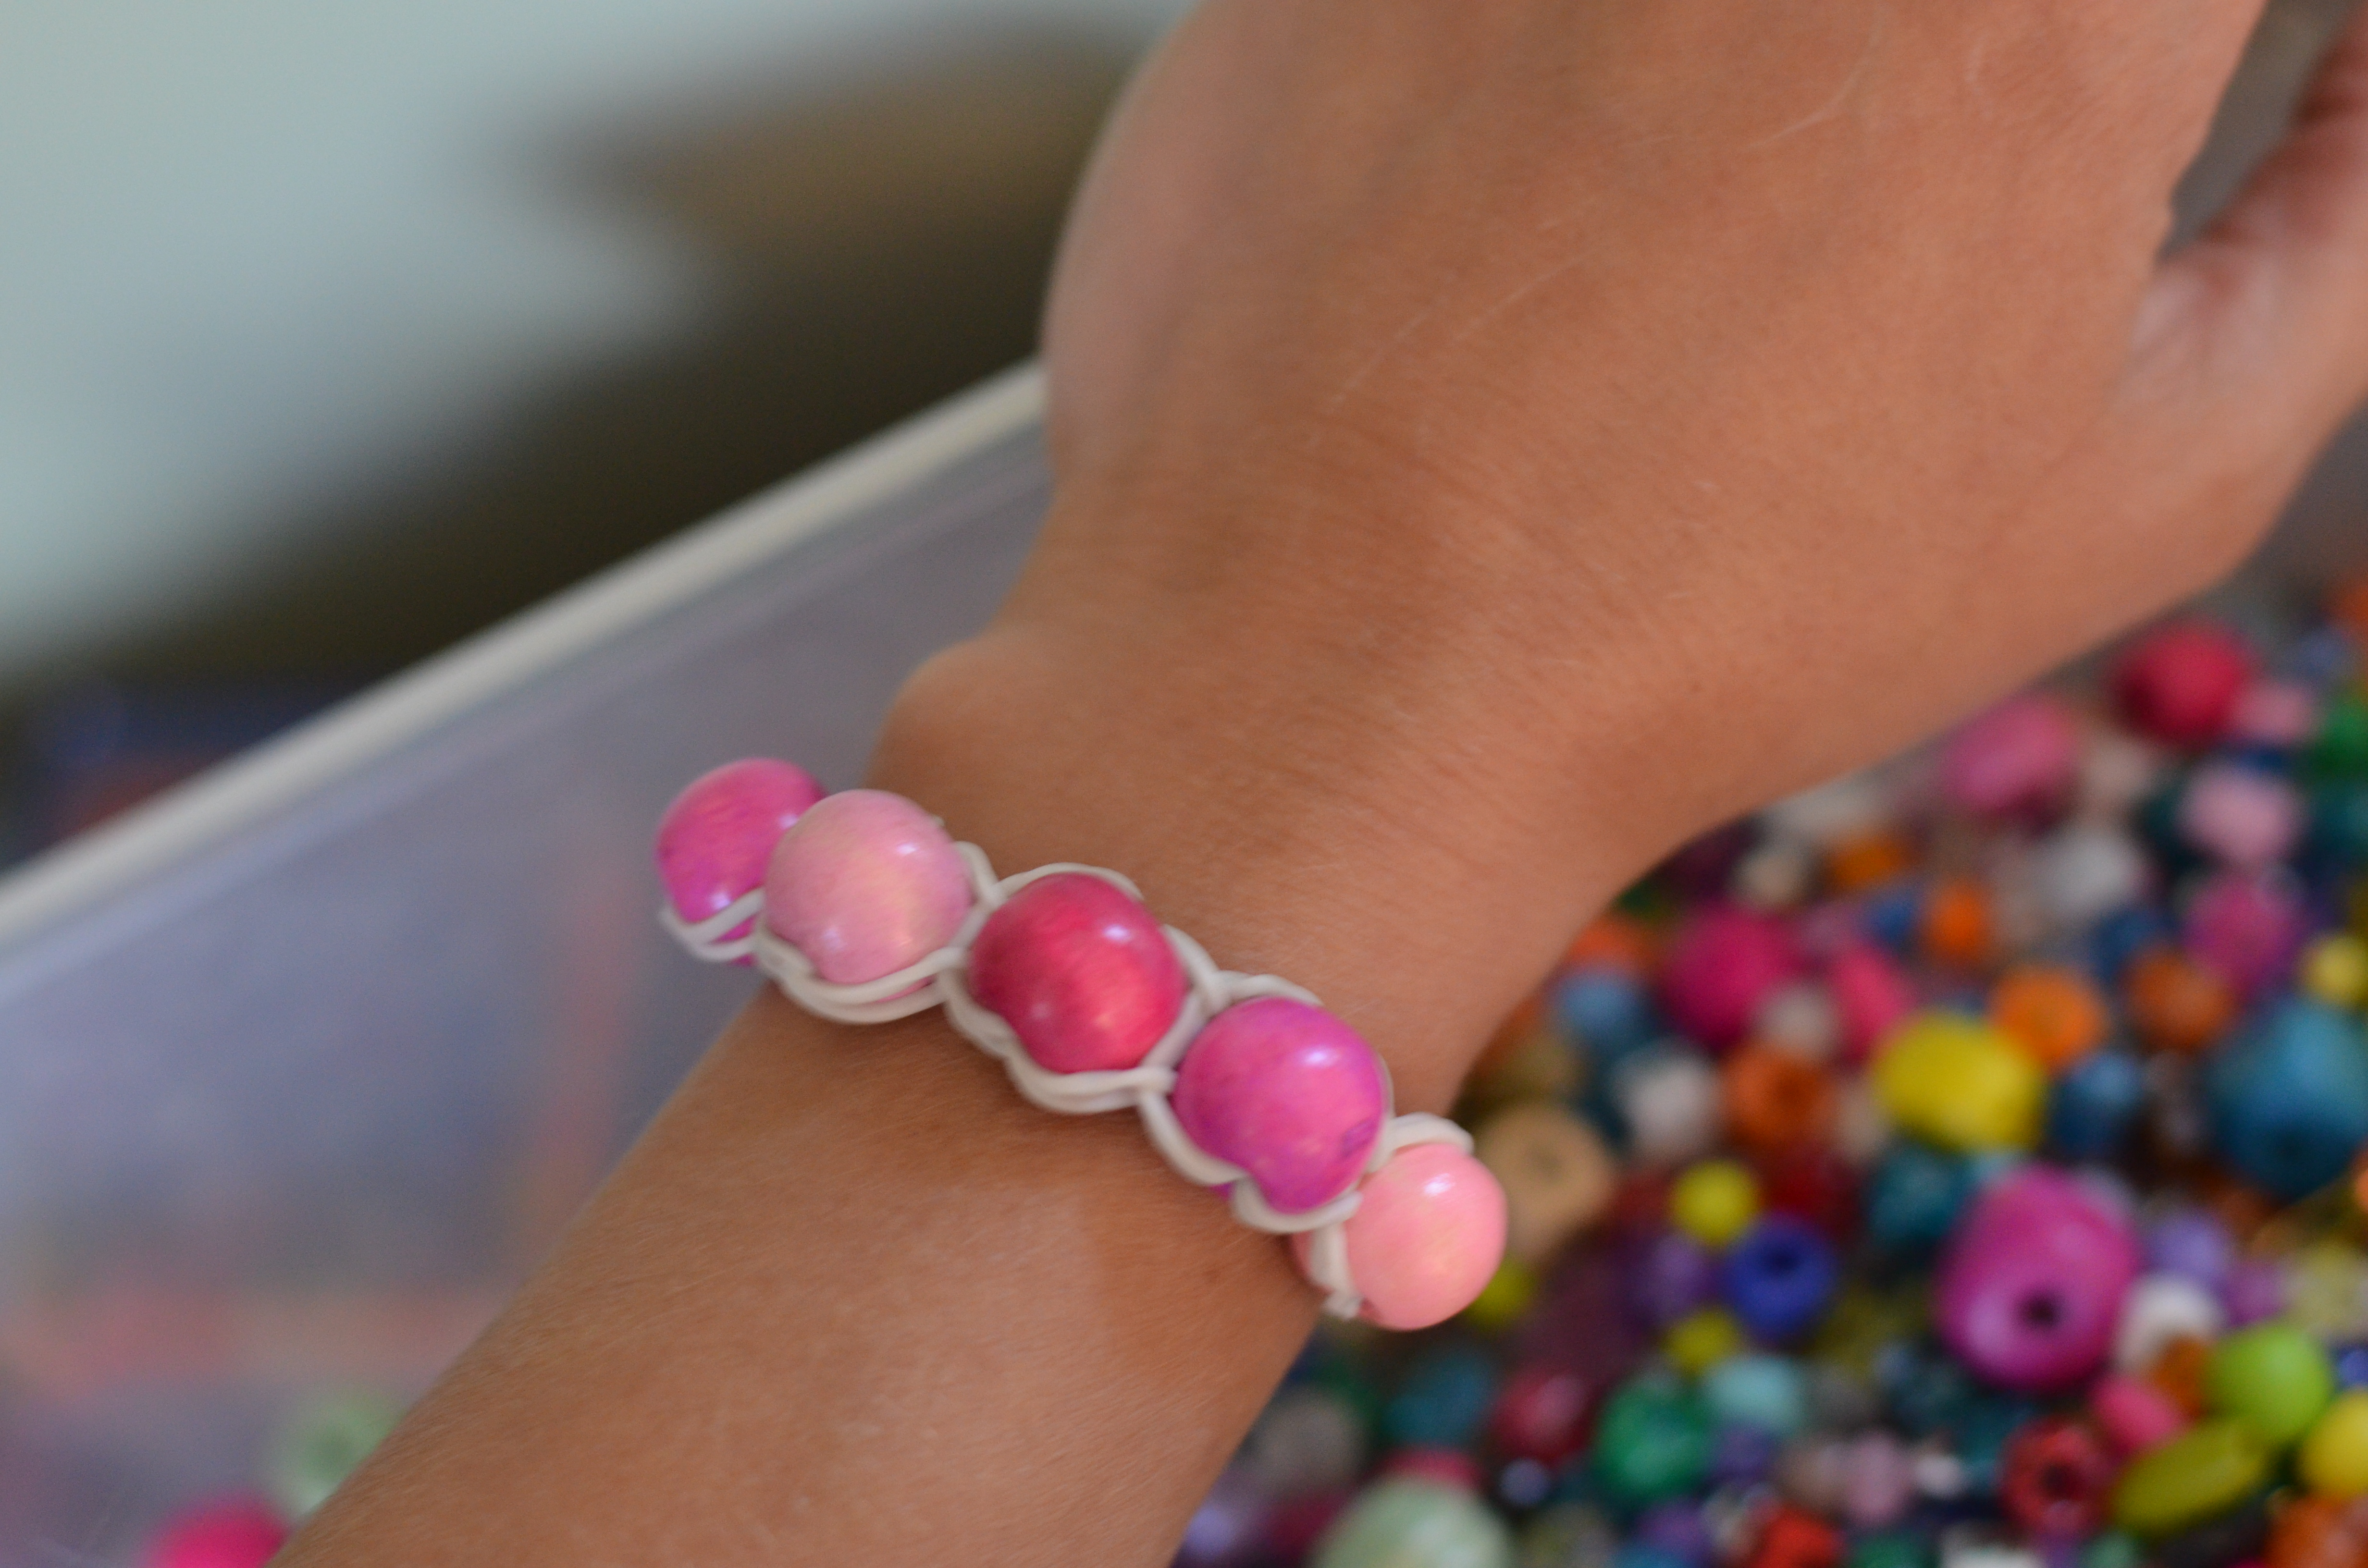 rubber band bracelets the saga continues with beads